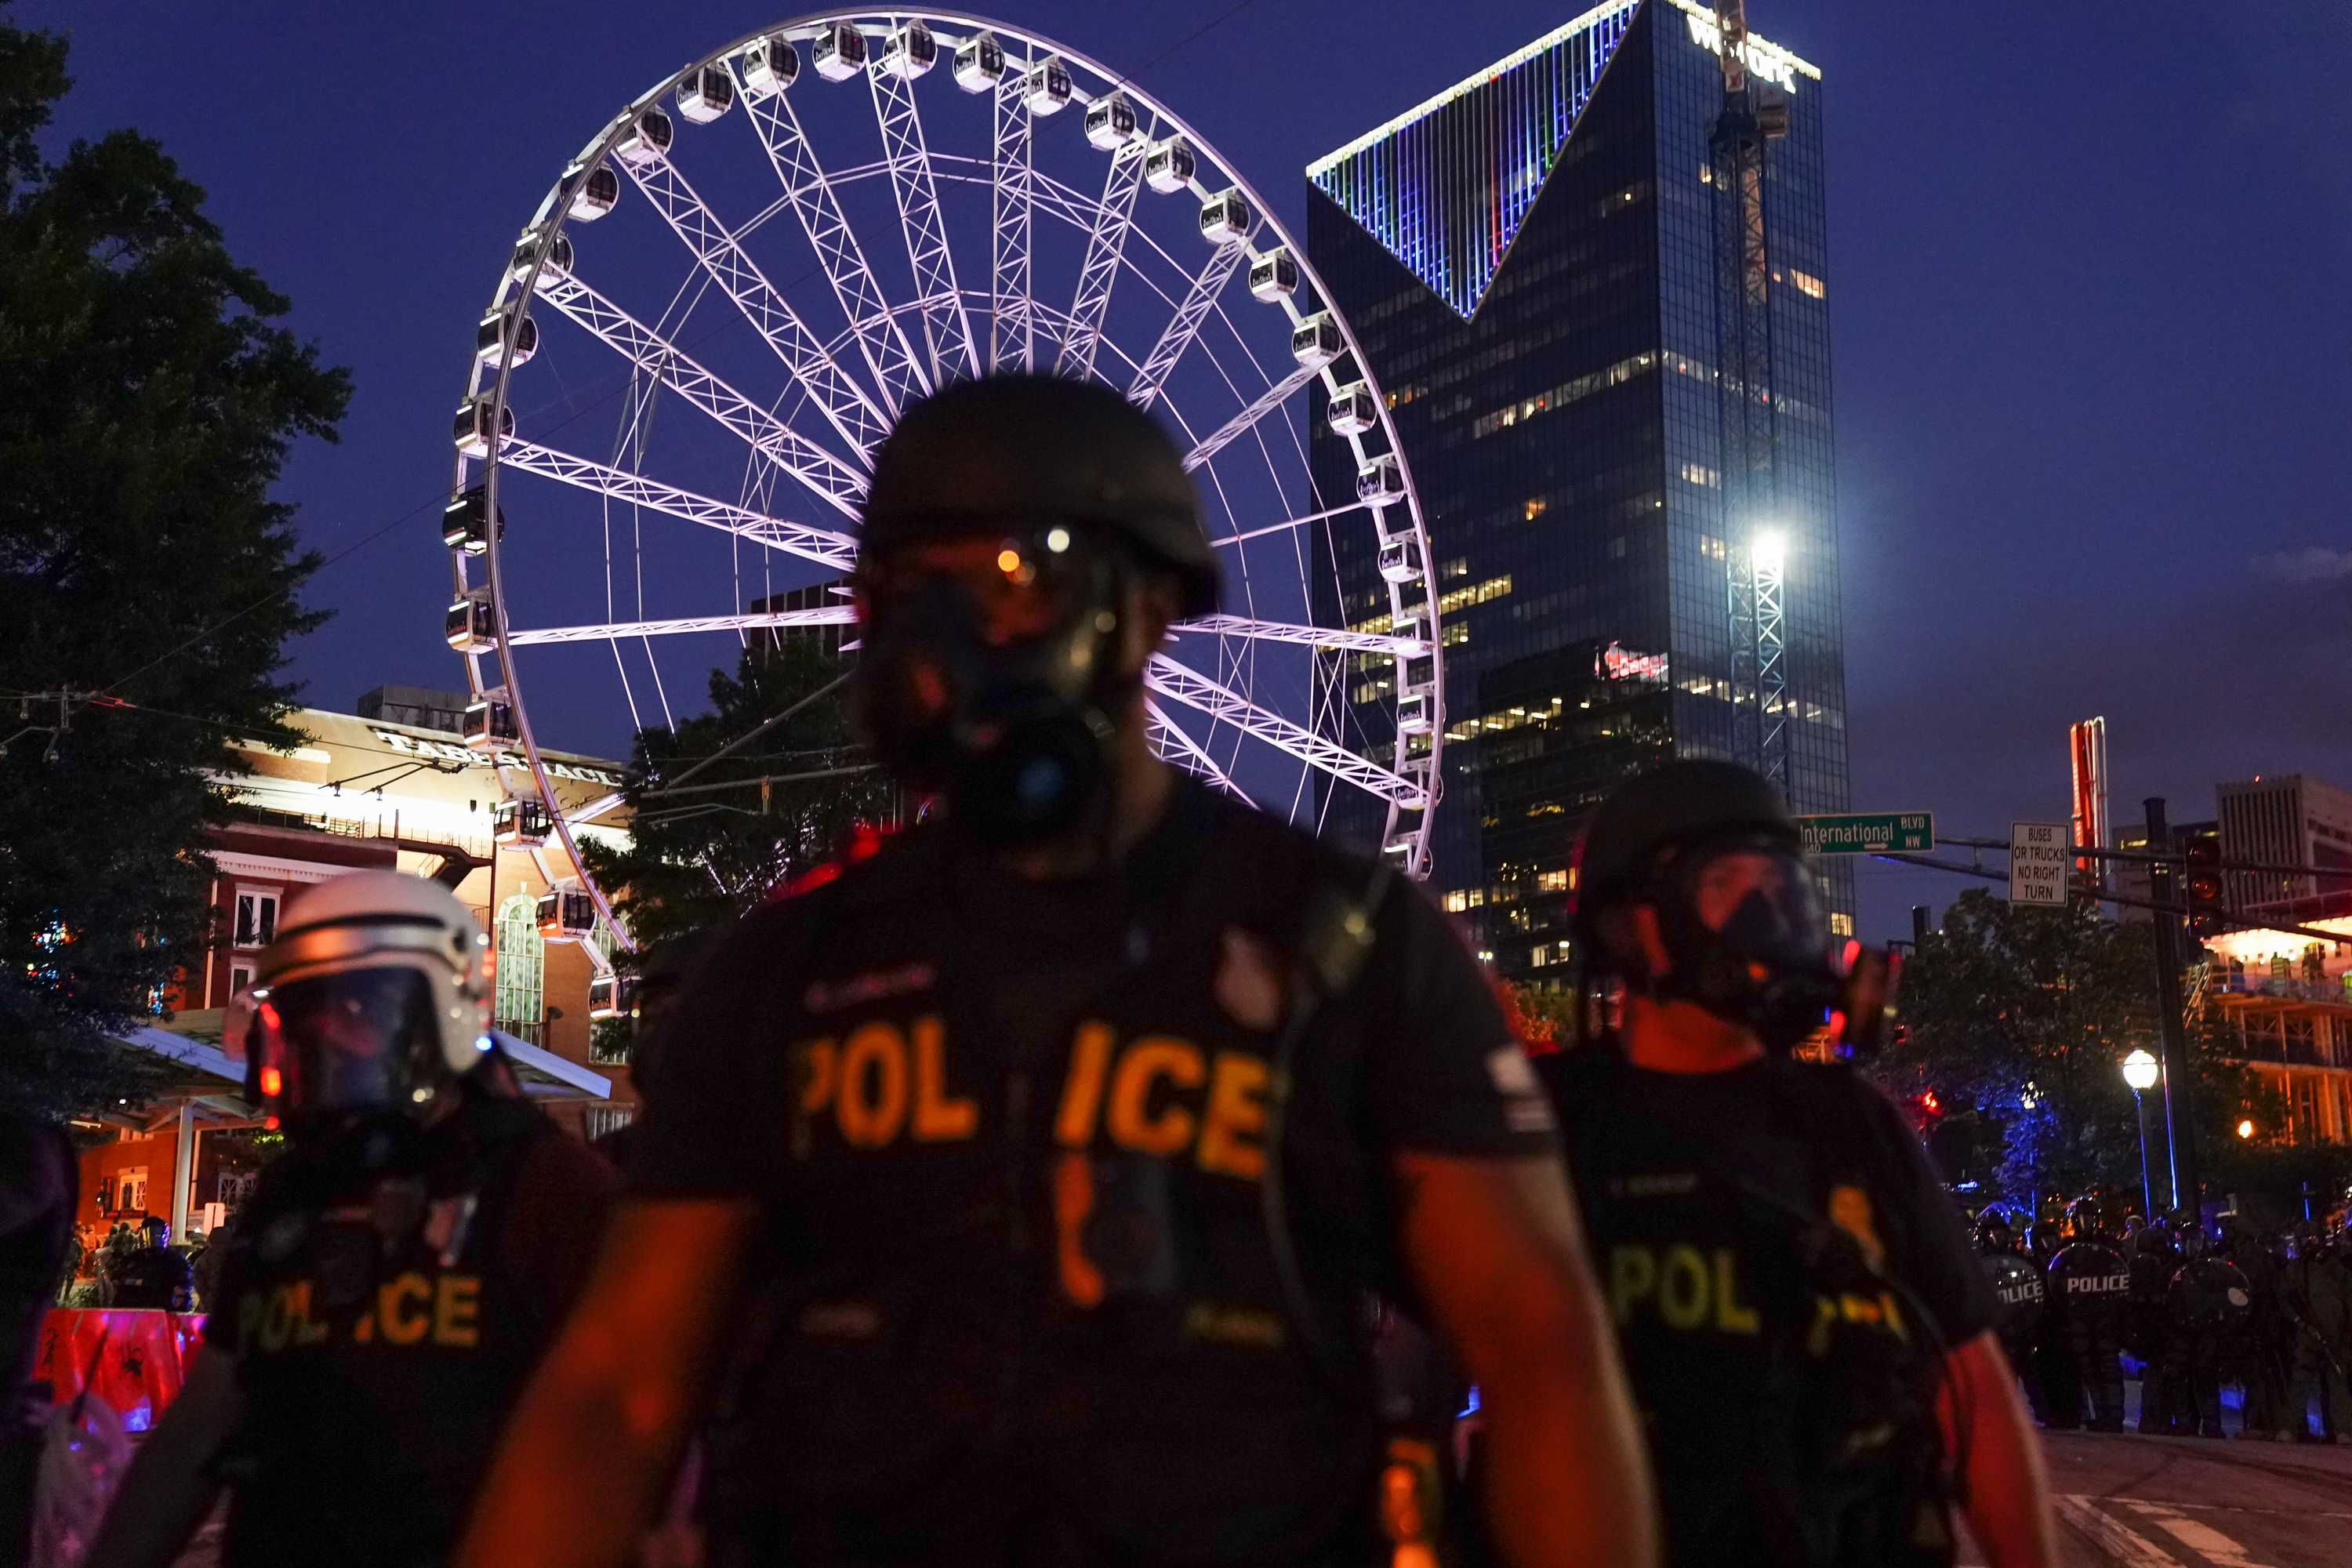 Police officers are seen during a demonstration in Atlanta on Sunday, May 31.